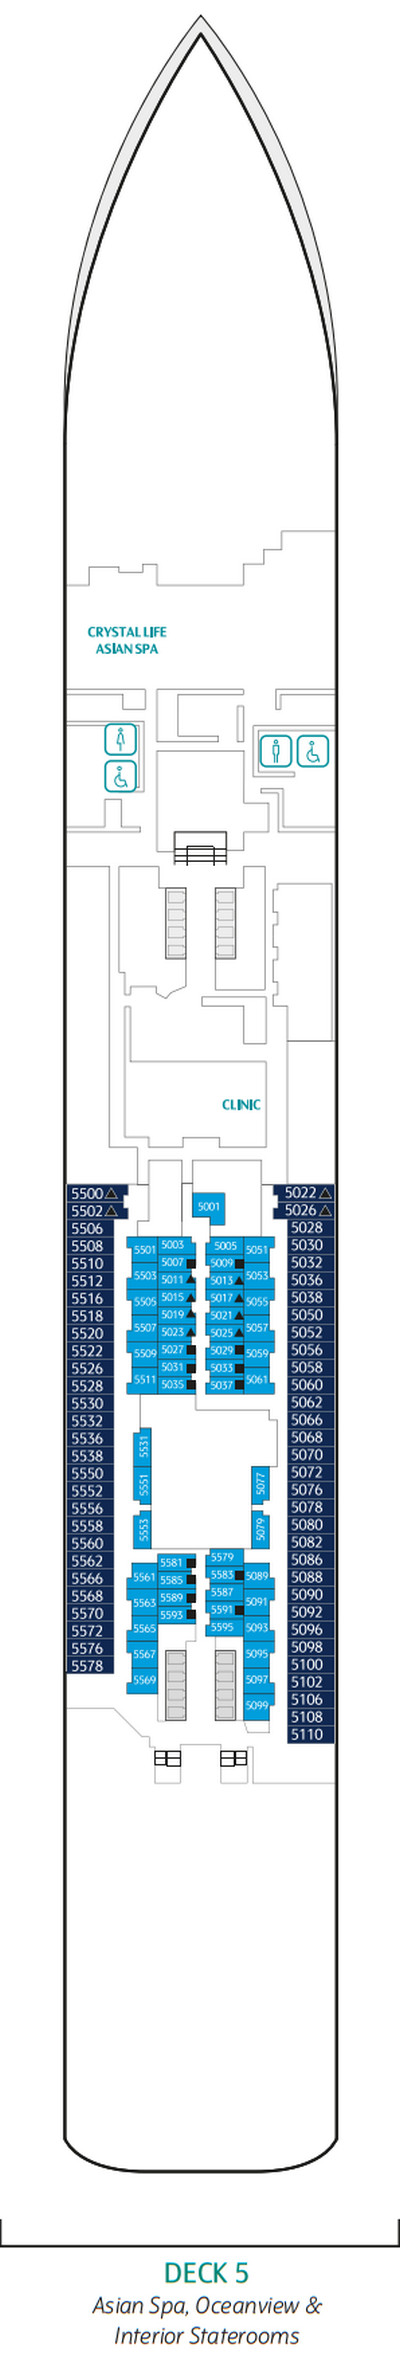 Genting Dream Deck 5 layout